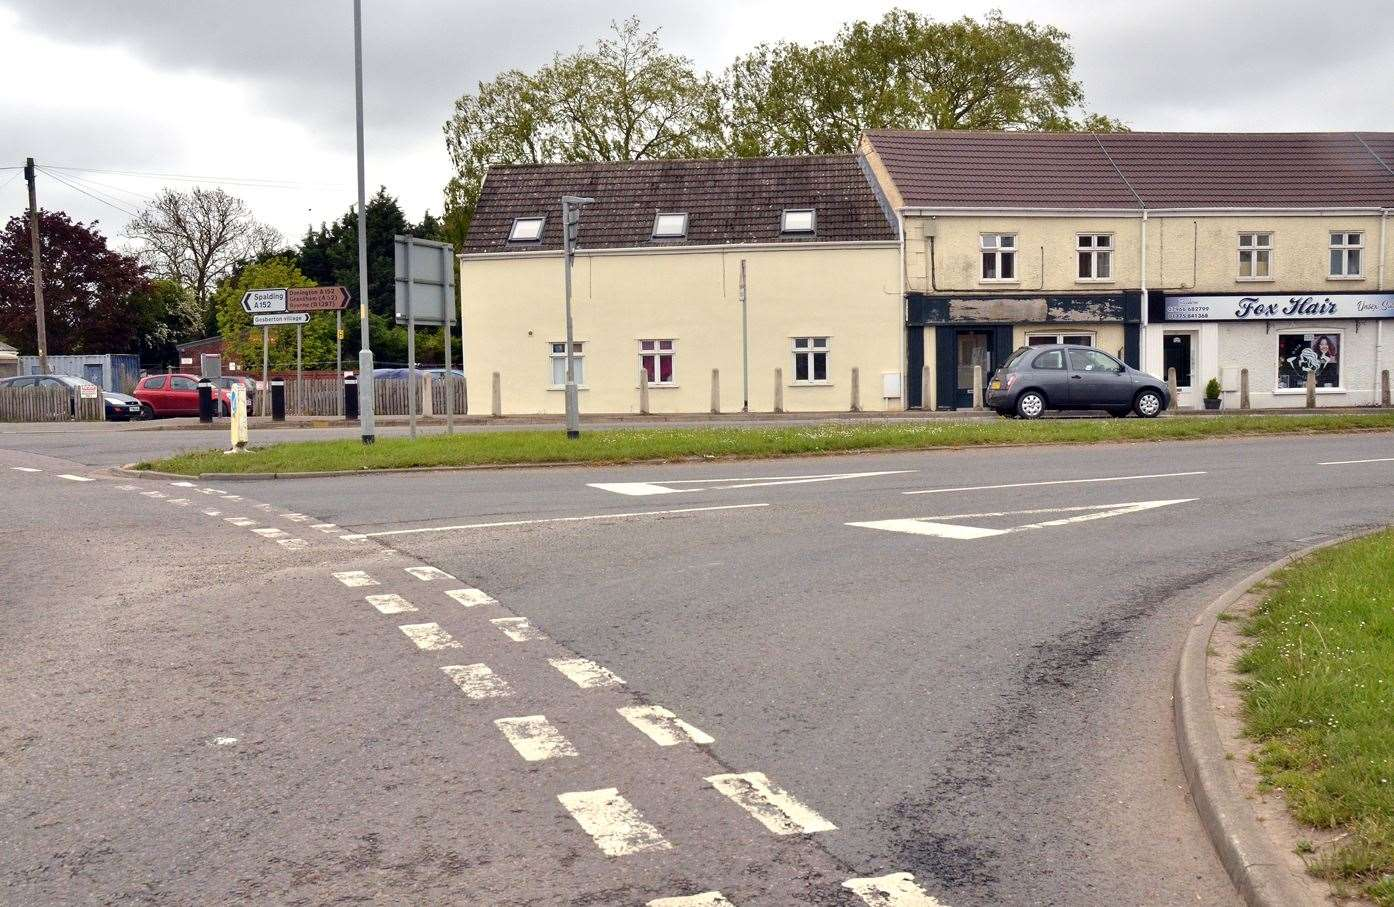 A traffic survey has been carried out in Gosberton